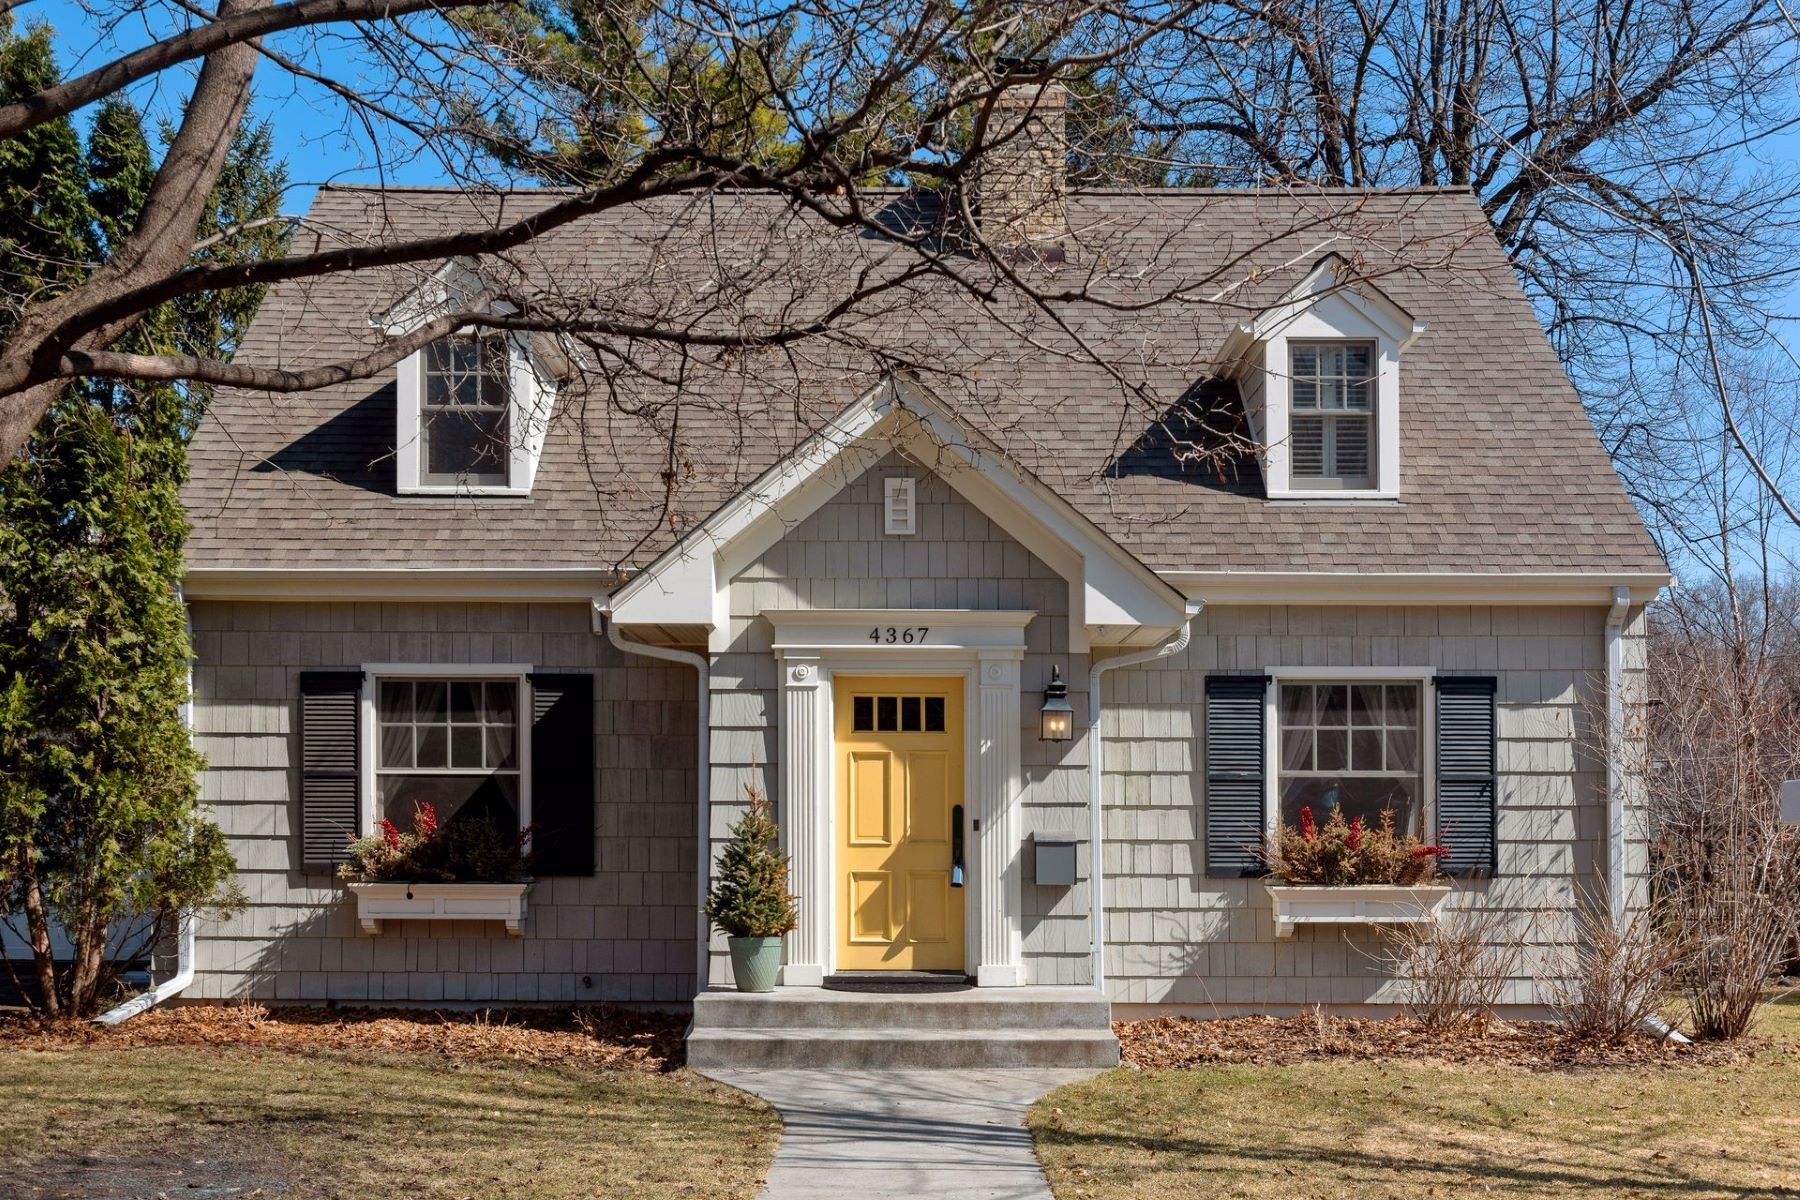 Single Family Homes for Sale at 4367 Mackey Avenue St. Louis Park, Minnesota 55424 United States